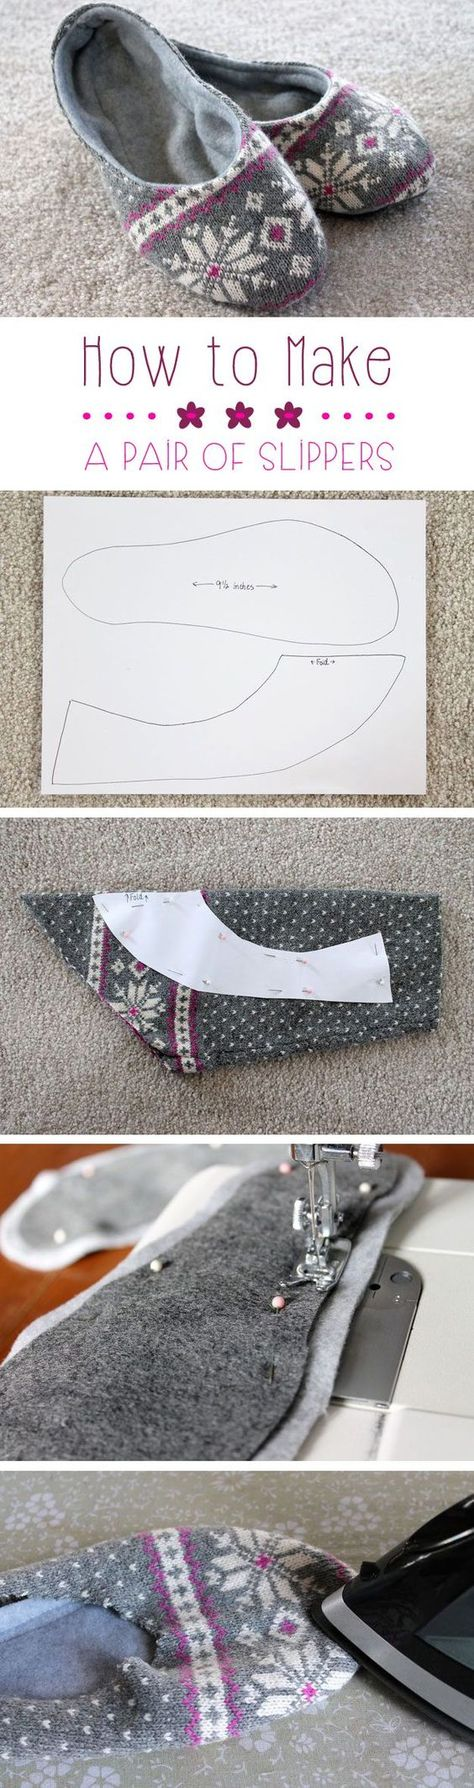 35 Cute Easy Sewing Projects For The Entire Family